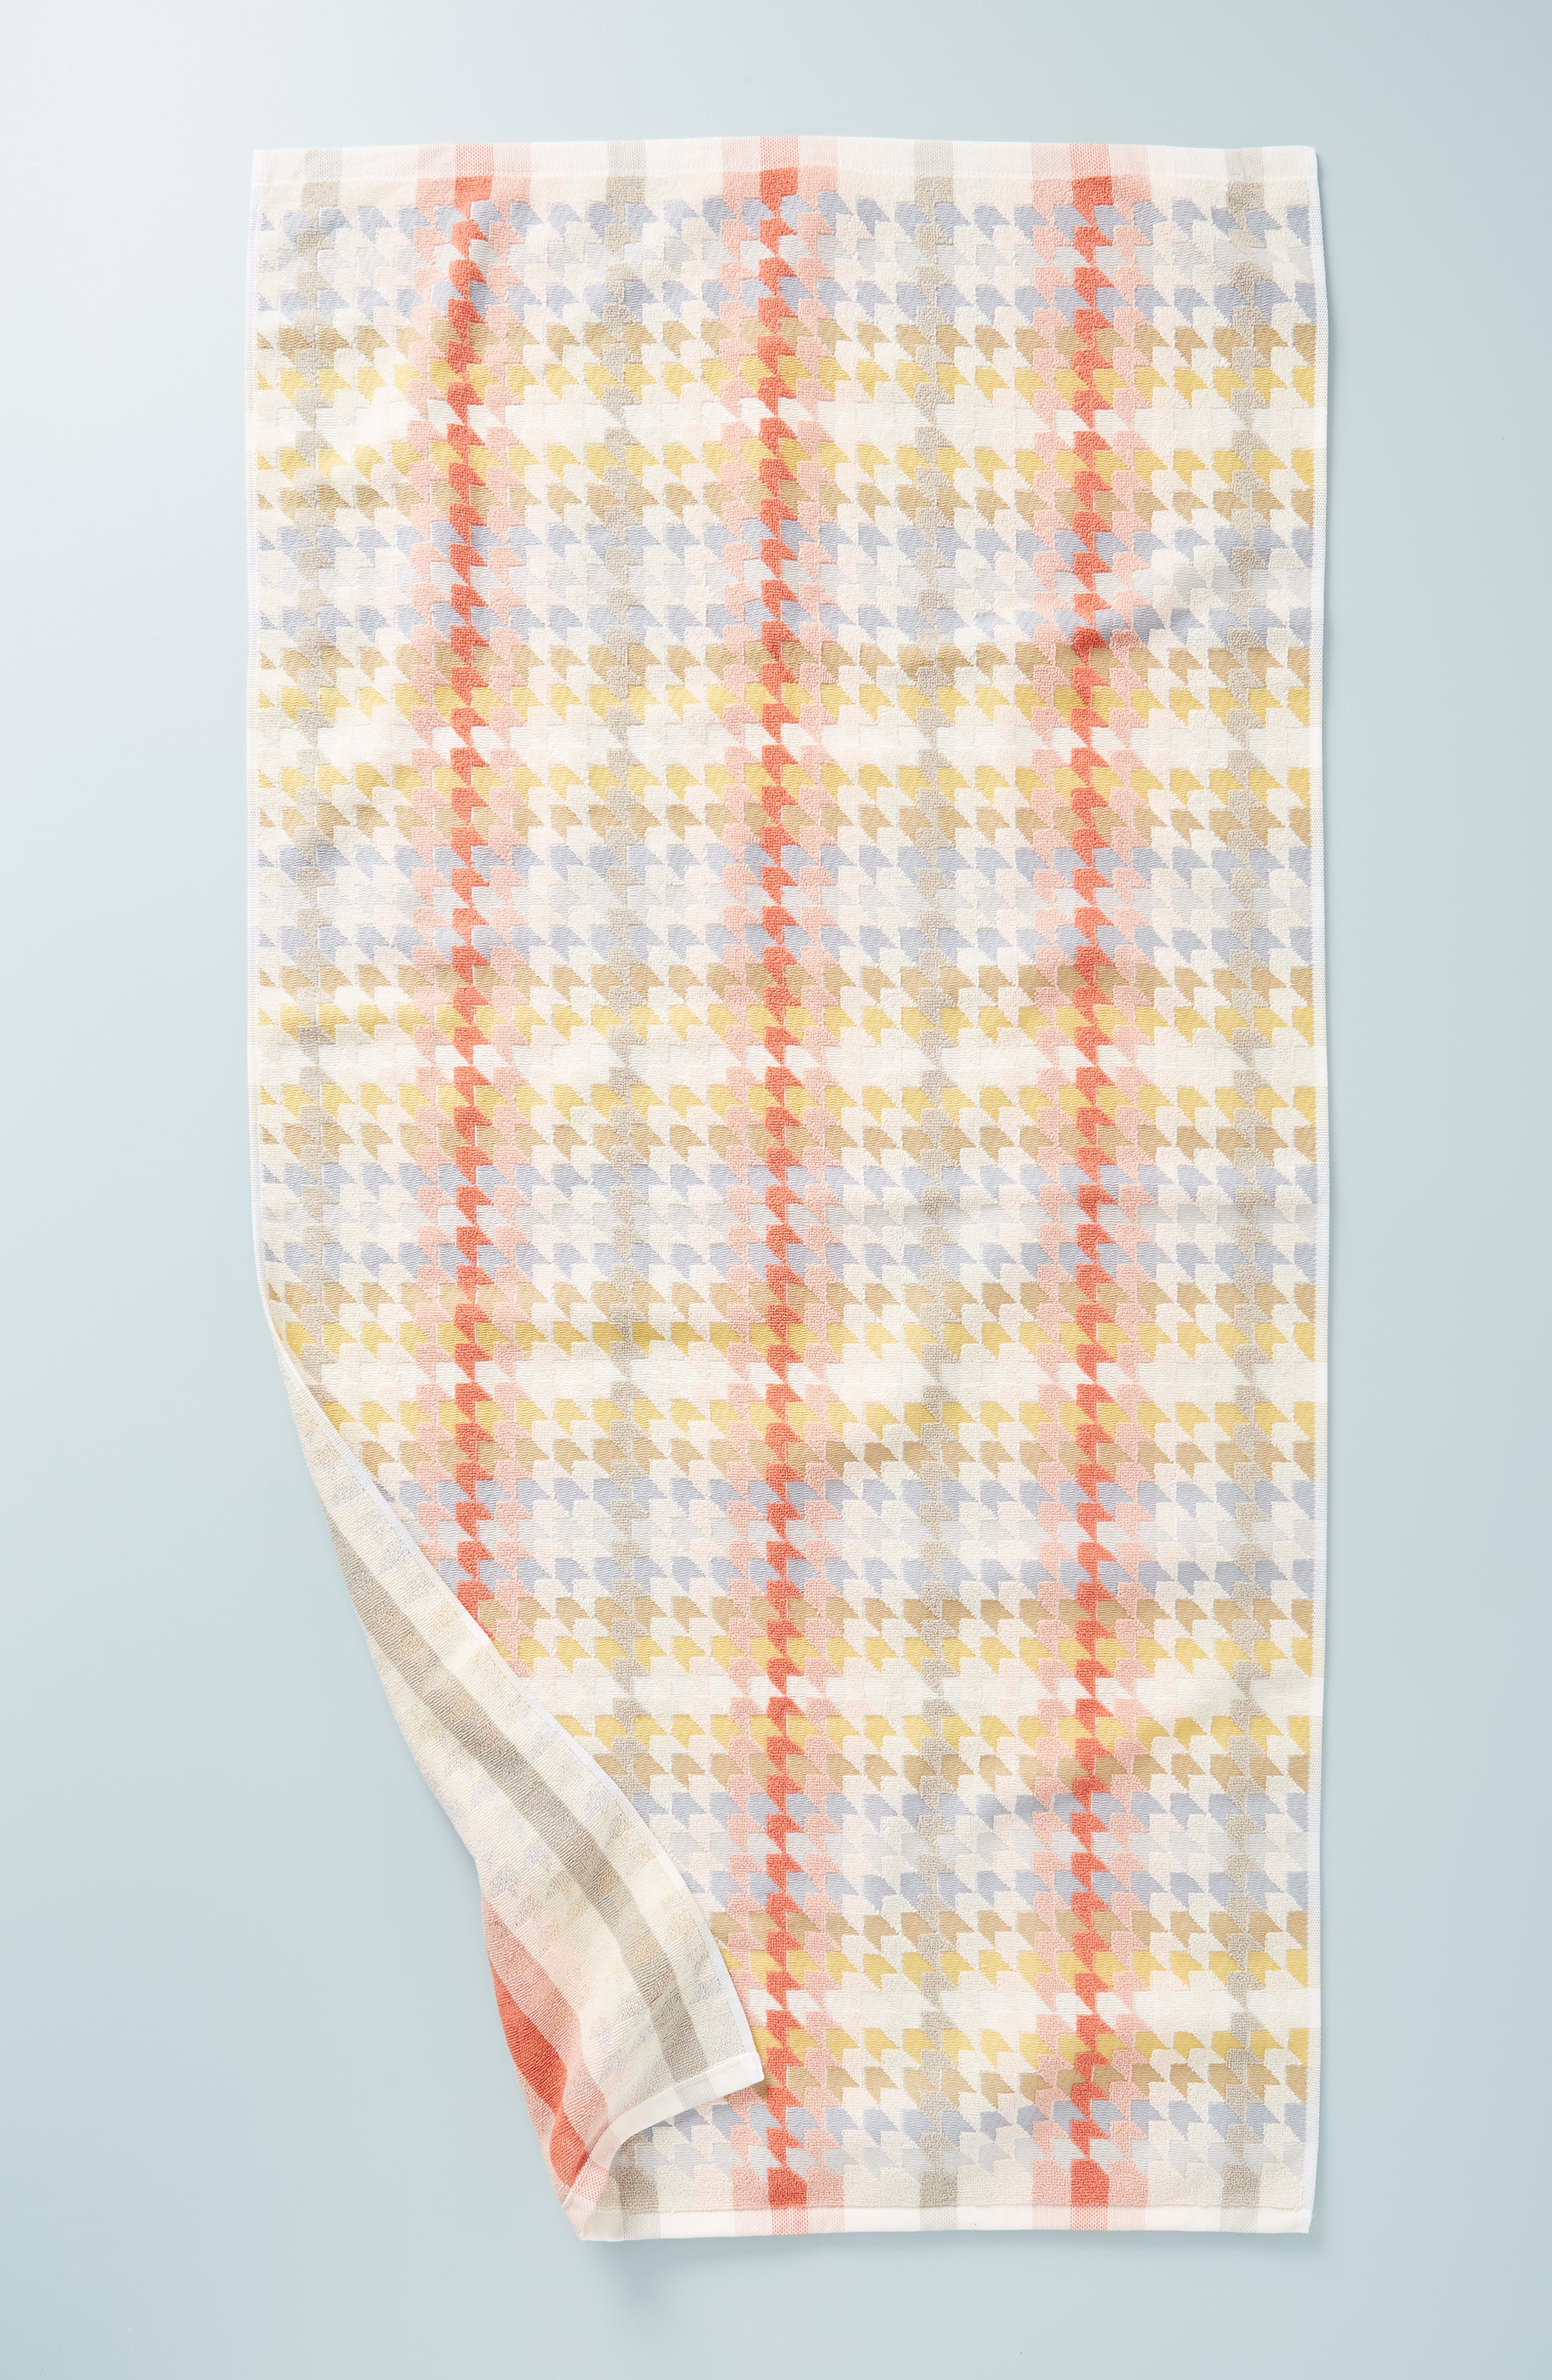 ANTHROPOLOGIE,                             Noella Bath Towel,                             Main thumbnail 1, color,                             ORANGE COMBO